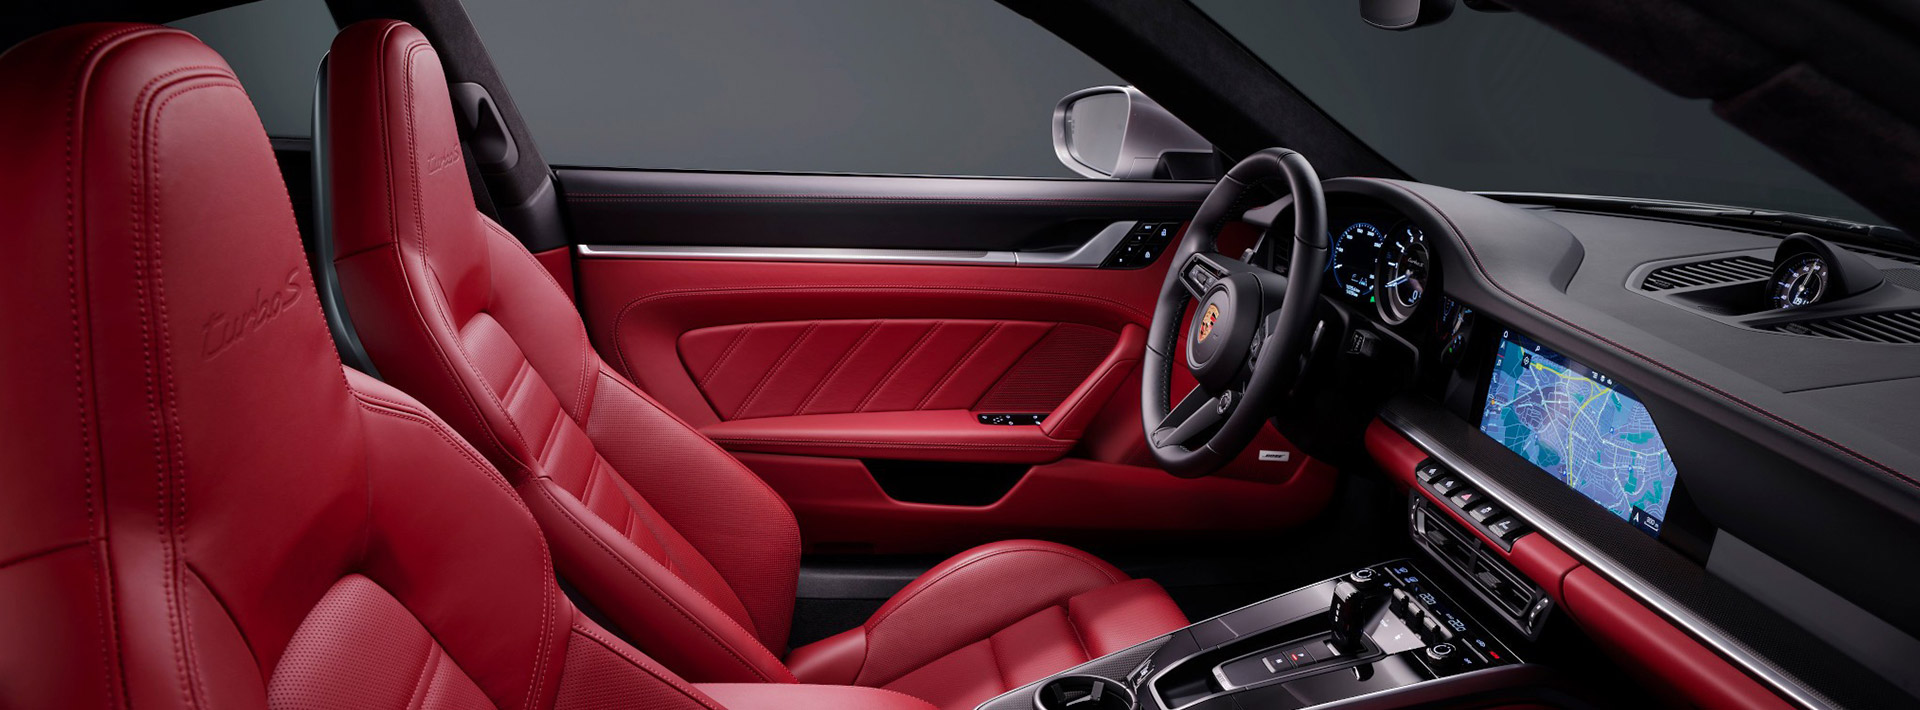 2021 Porsche 911 Turbo S Coupe & Cabriolet revealed with 640 HP — inside, full leather and carbon fiber trim with light silver accents.